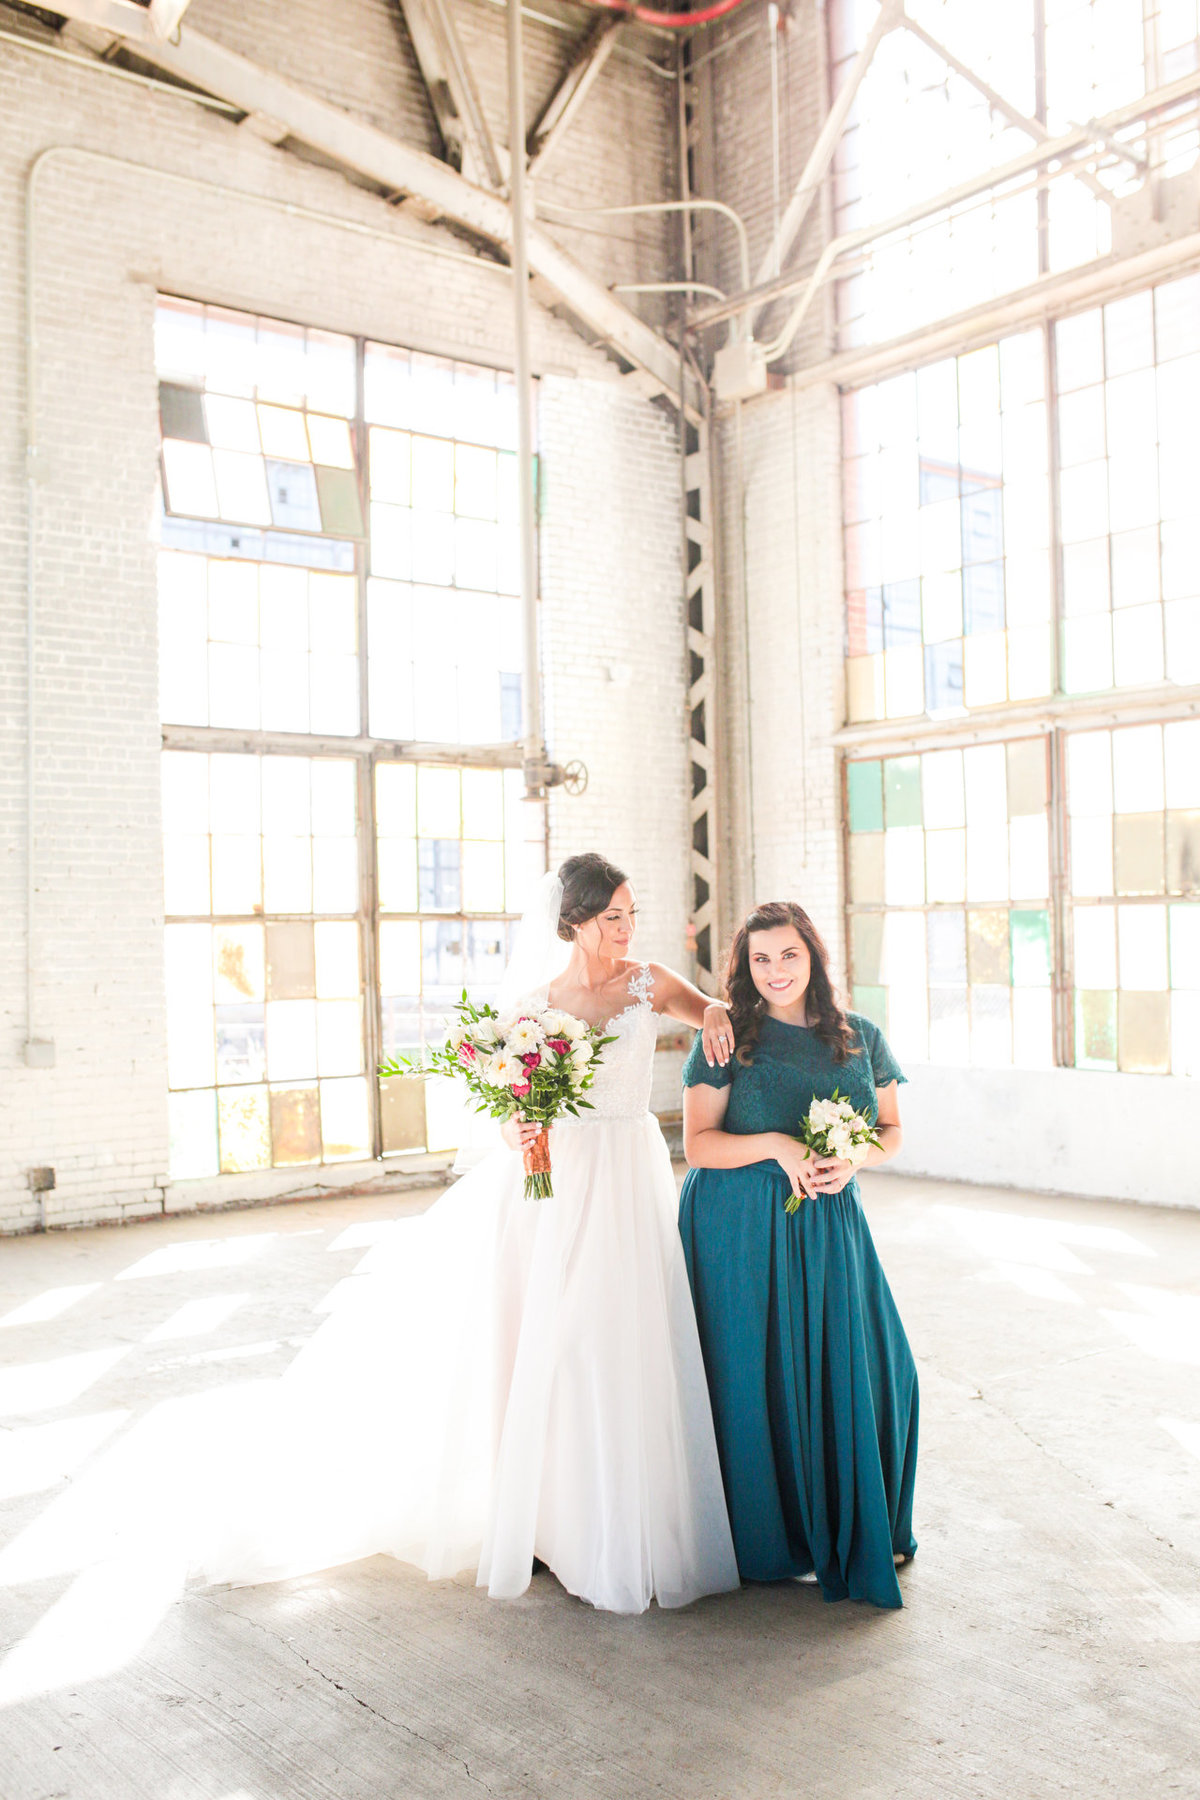 Albuquerque Wedding Photographer_Abq Rail Yards Reception_www.tylerbrooke.com_019